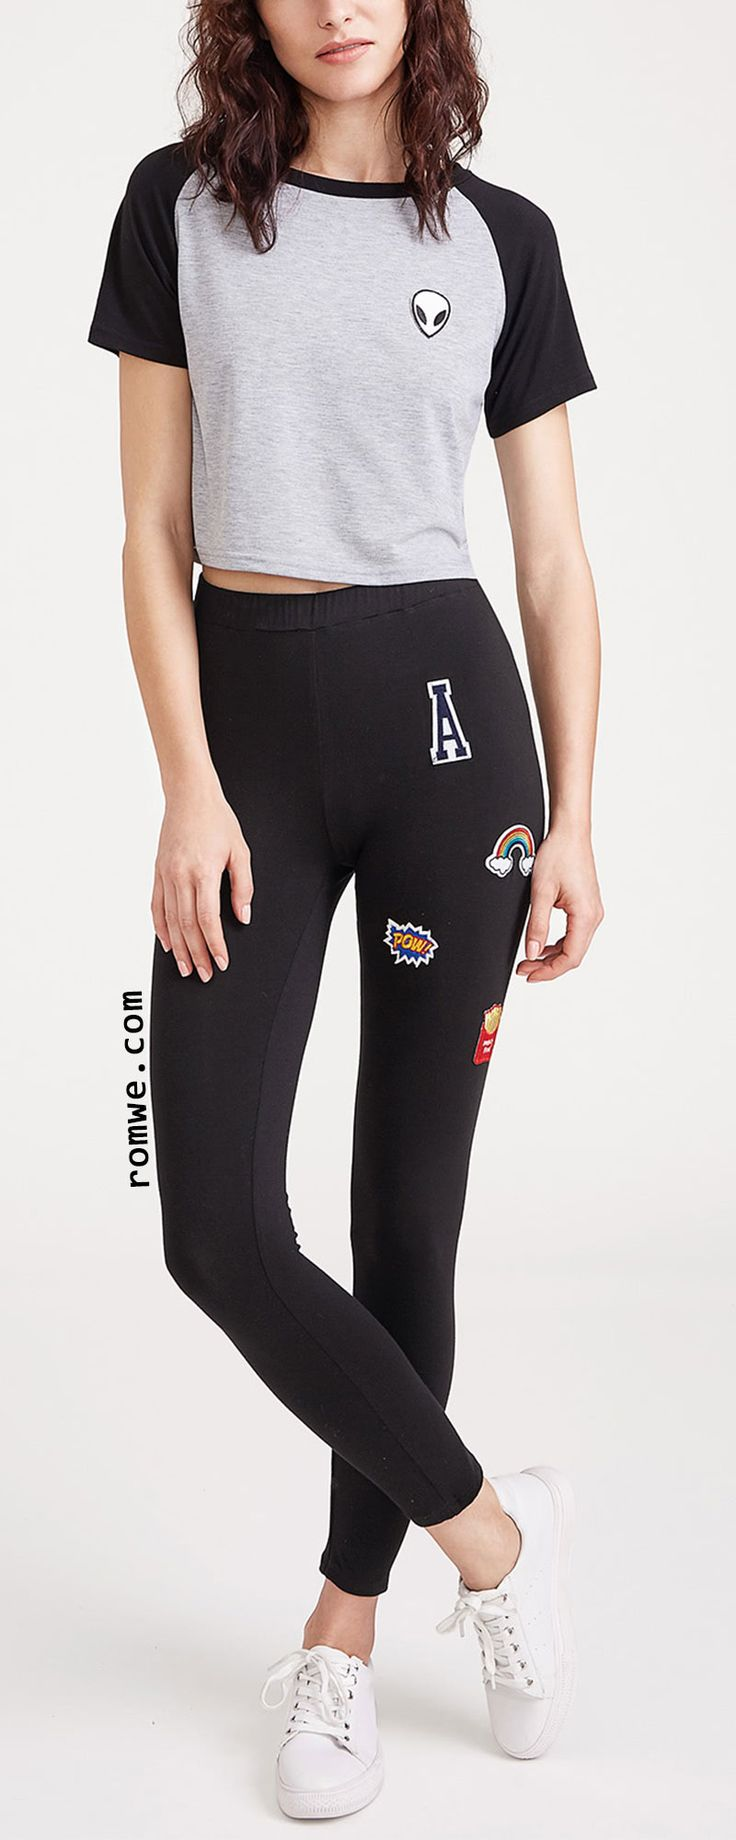 Black Embroidered Patch Applique Leggings